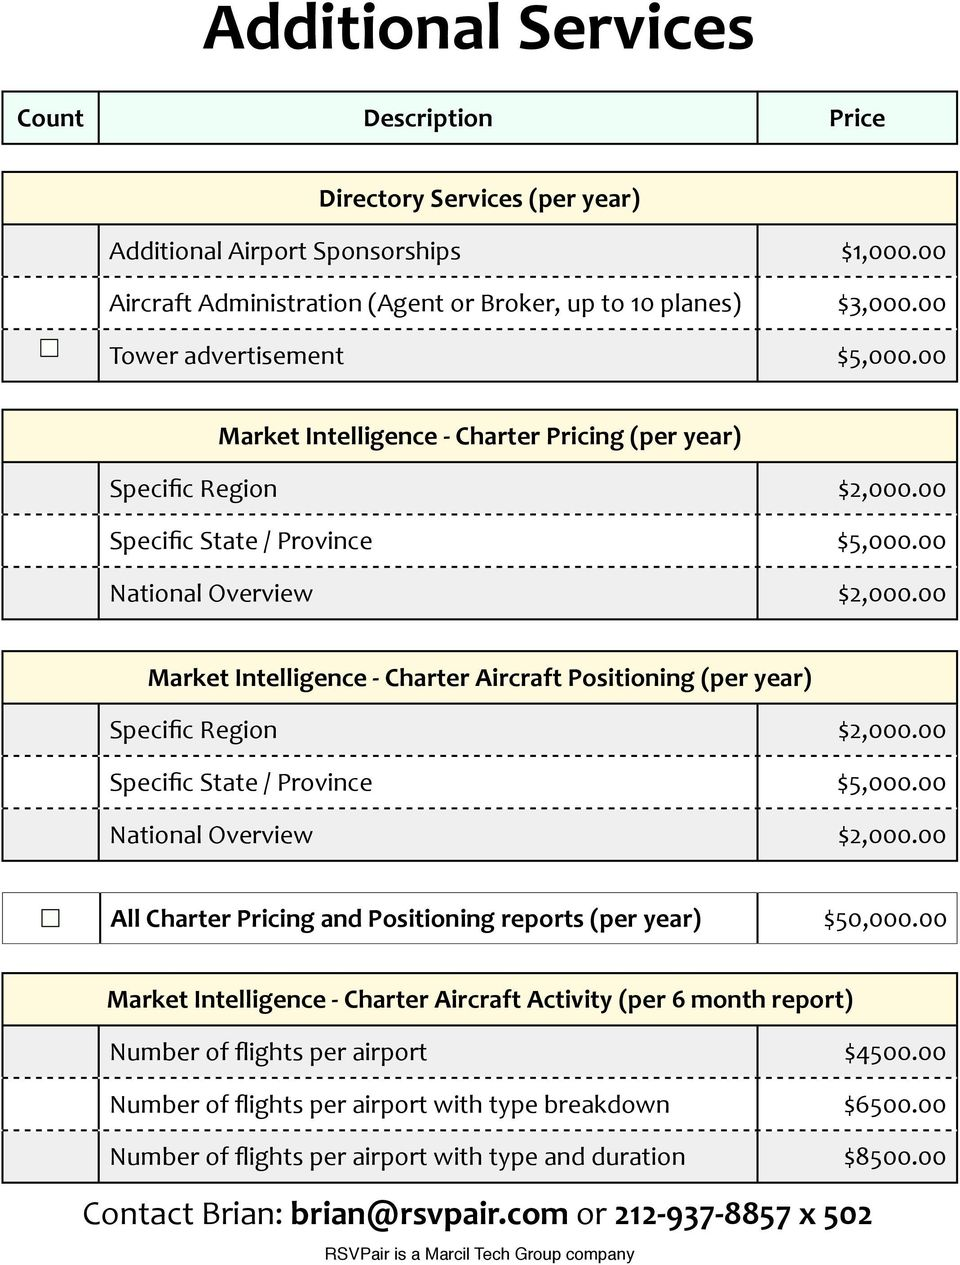 00 Market Intelligence Charter Aircraft Positioning (per year) Specific Region $2,000.00 Specific State / Province $5,000.00 National Overview $2,000.